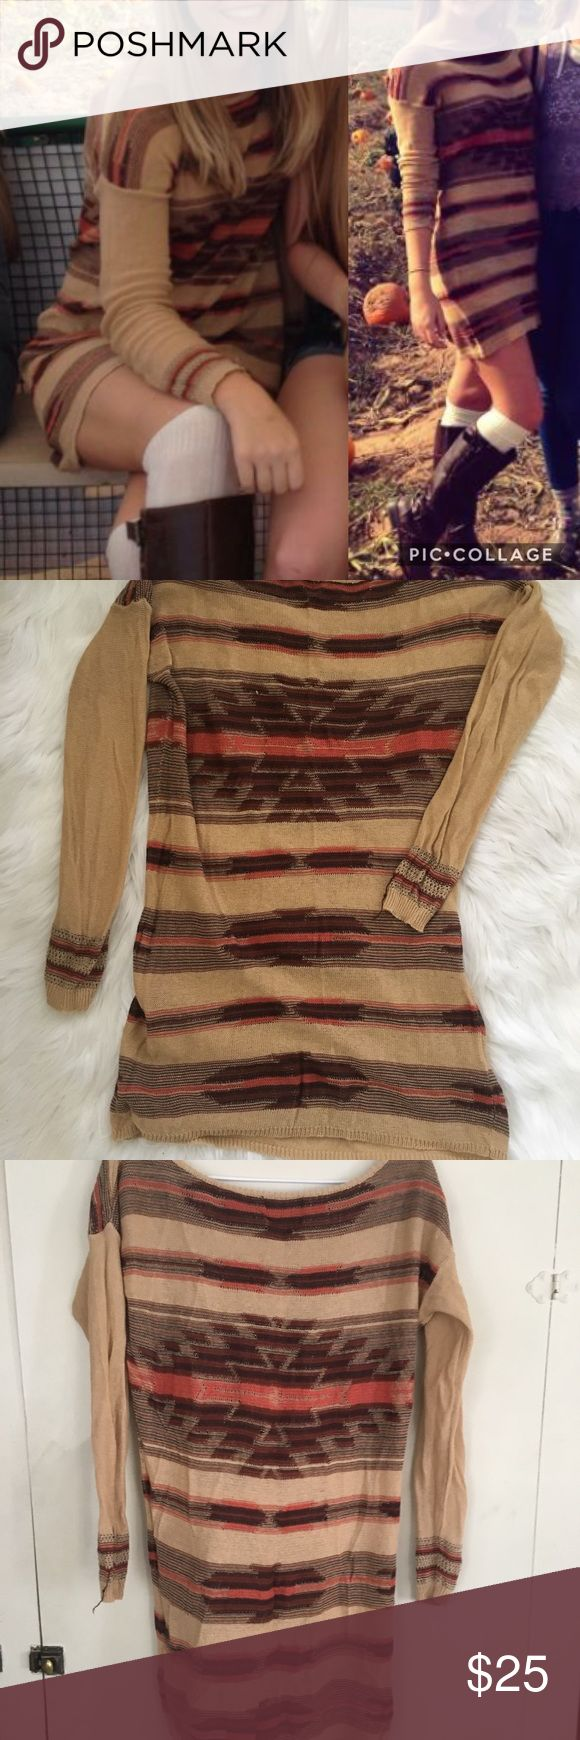 Autumn Sweater Dress🍂 This sweater dress is perfect for fall! All fall colors like browns, burnt orange, and tan. I bought it from a local boutique. Super comfy and cute. Size small. Dresses Long Sleeve